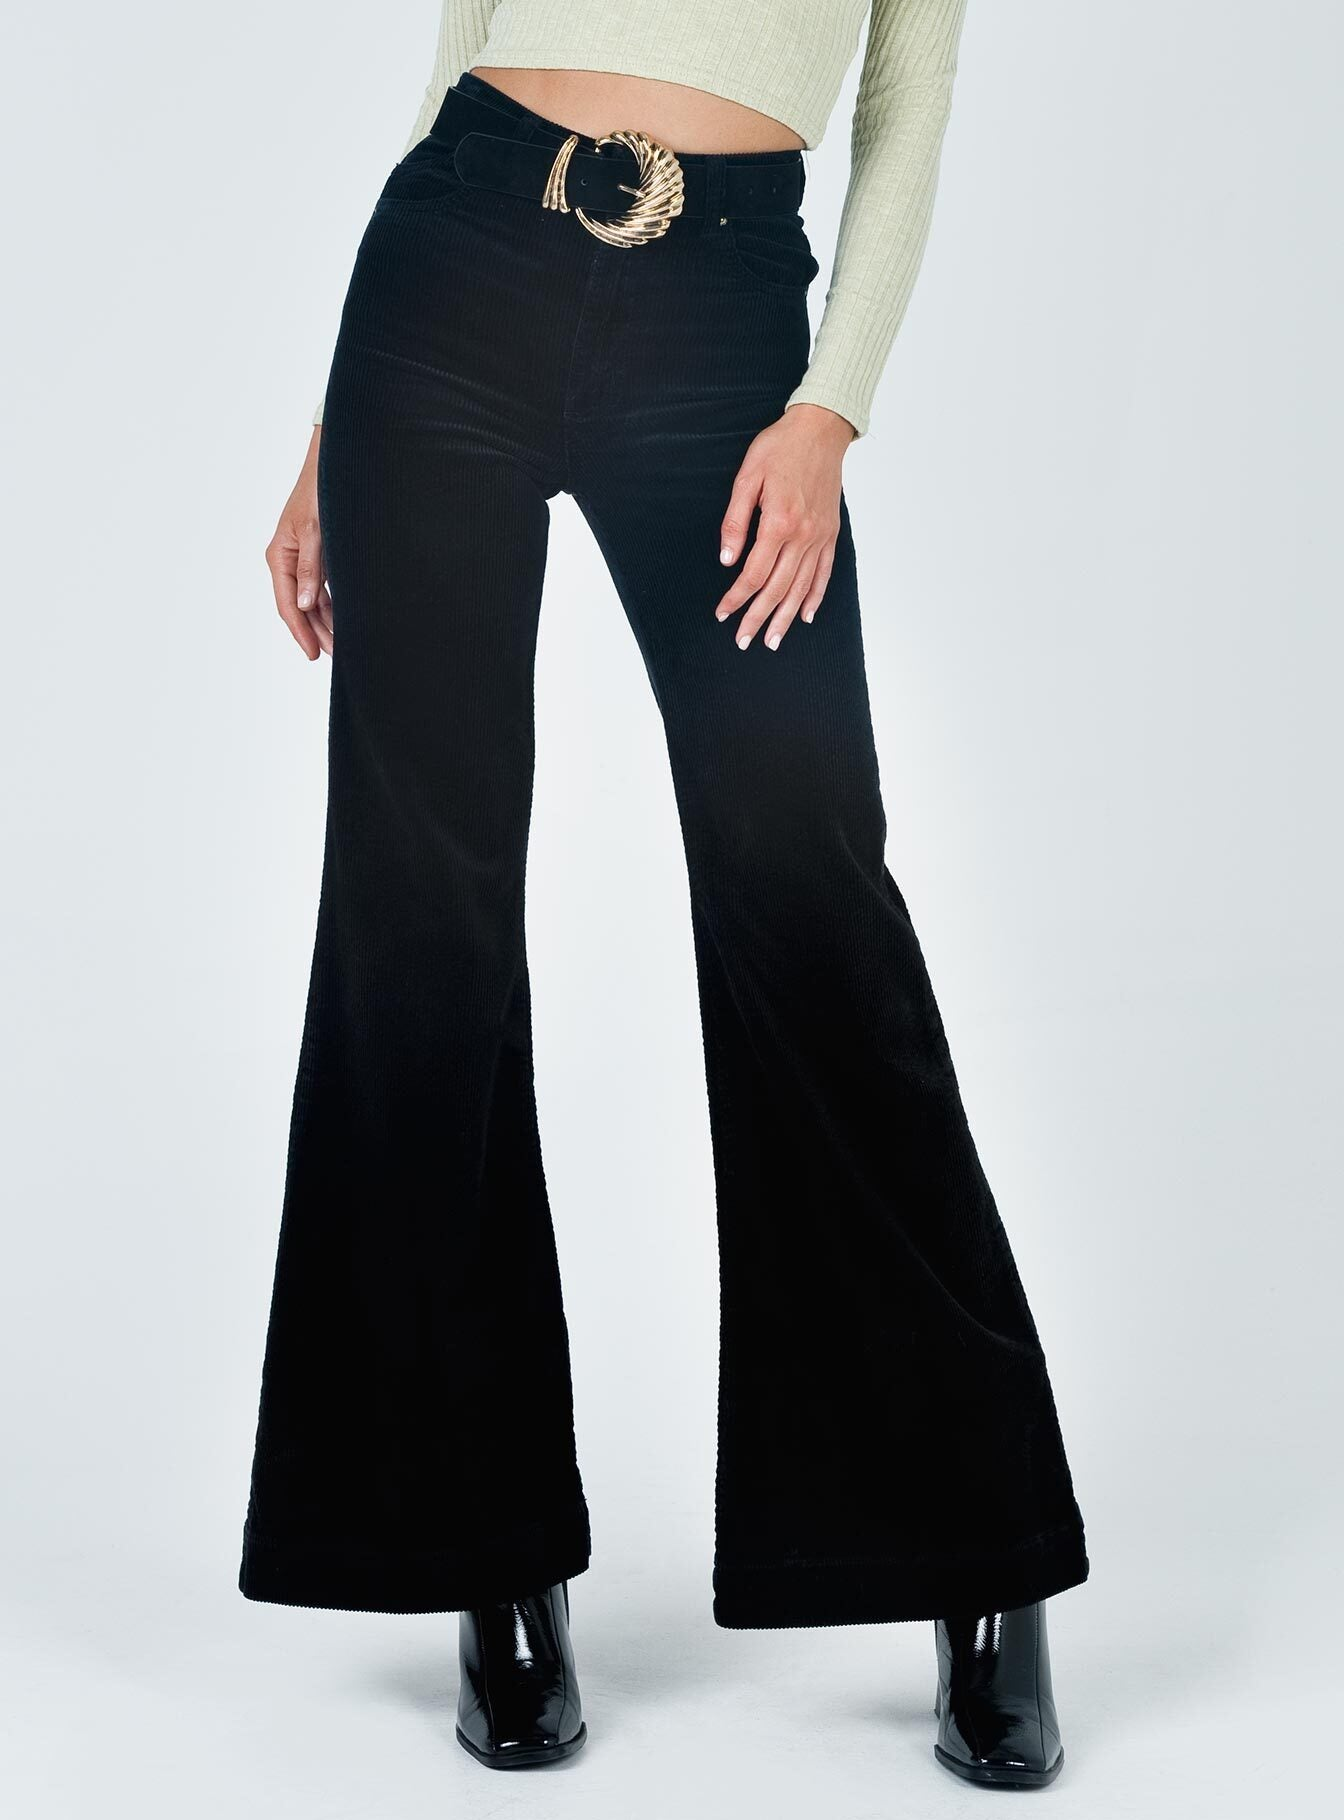 Rolla's Eastcoast Flare Velvet Black Pants